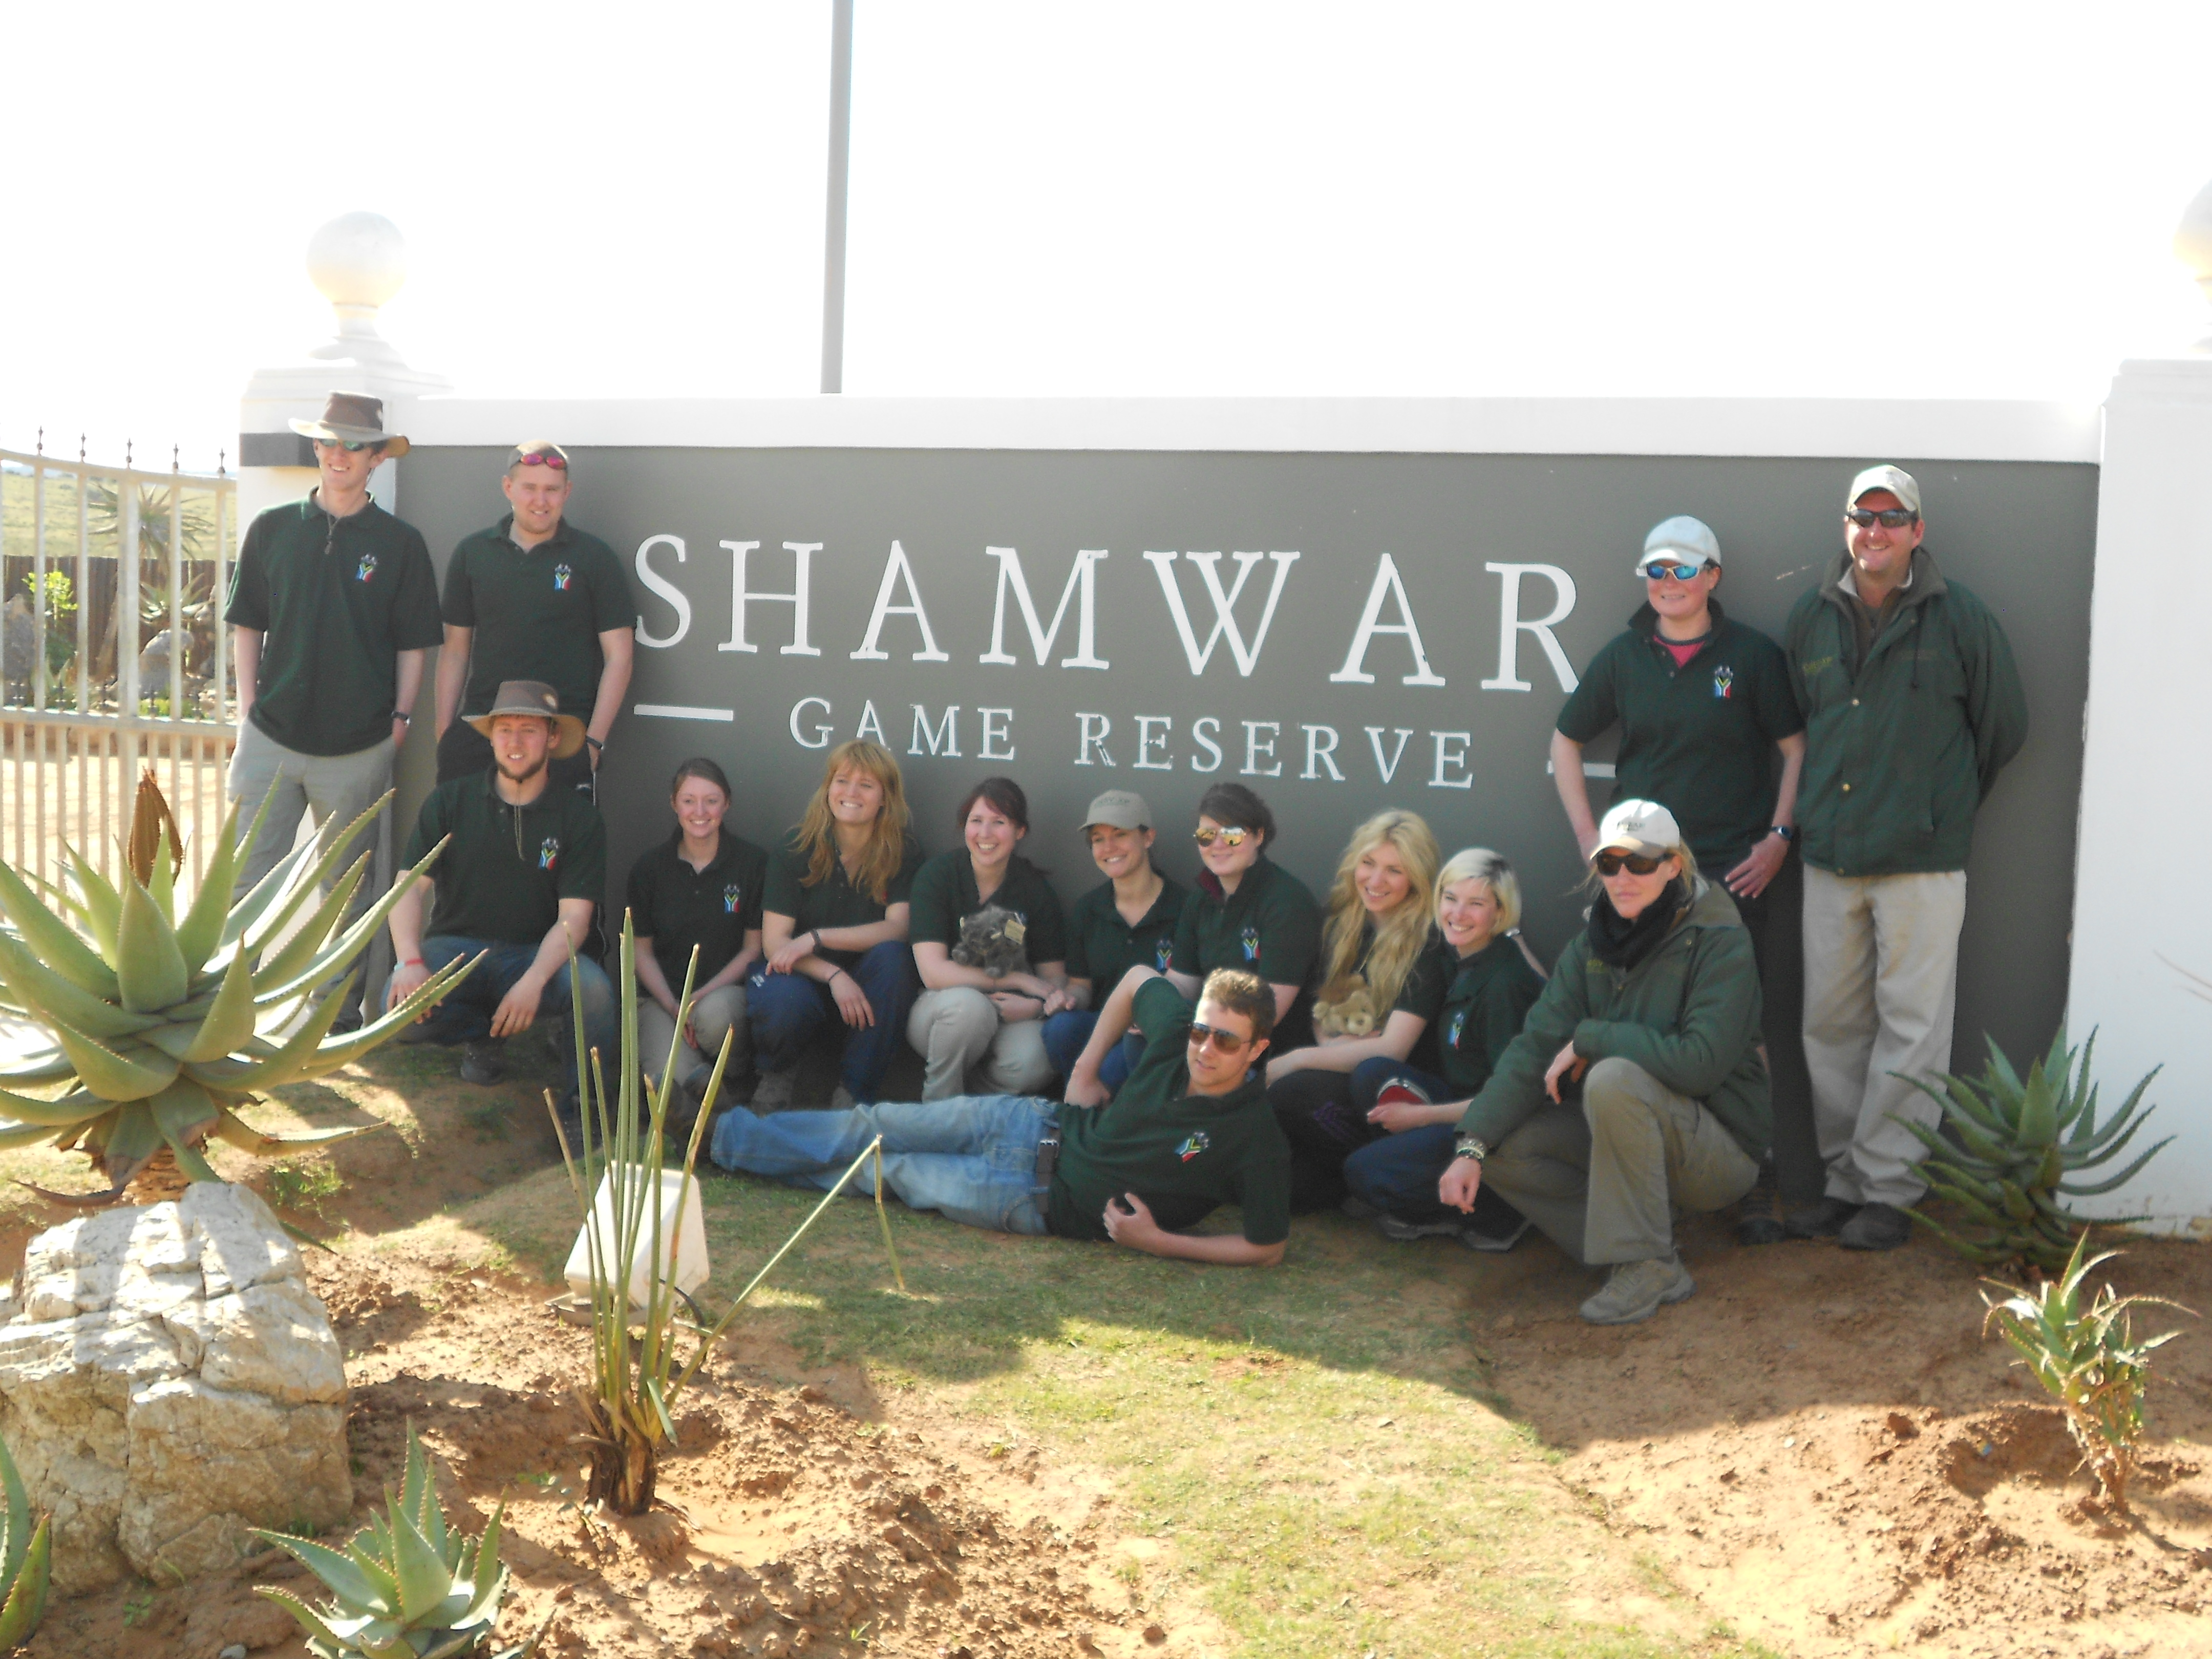 volunteers pose with the Shamwari Game Reserve sign